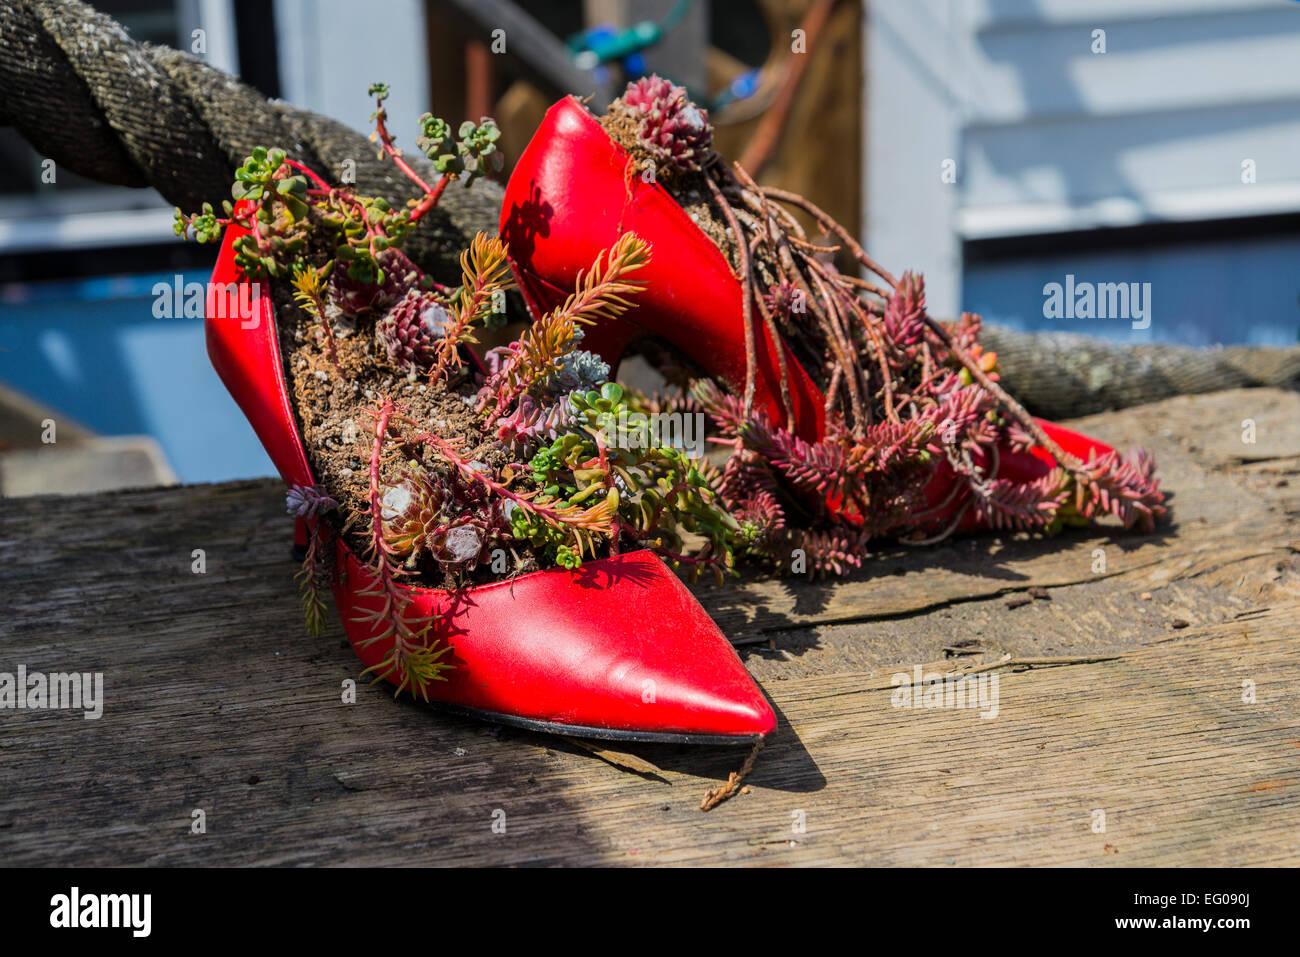 Succulent plants in red high heel shows, Cowichan Bay, British Columbia, Canada - Stock Image